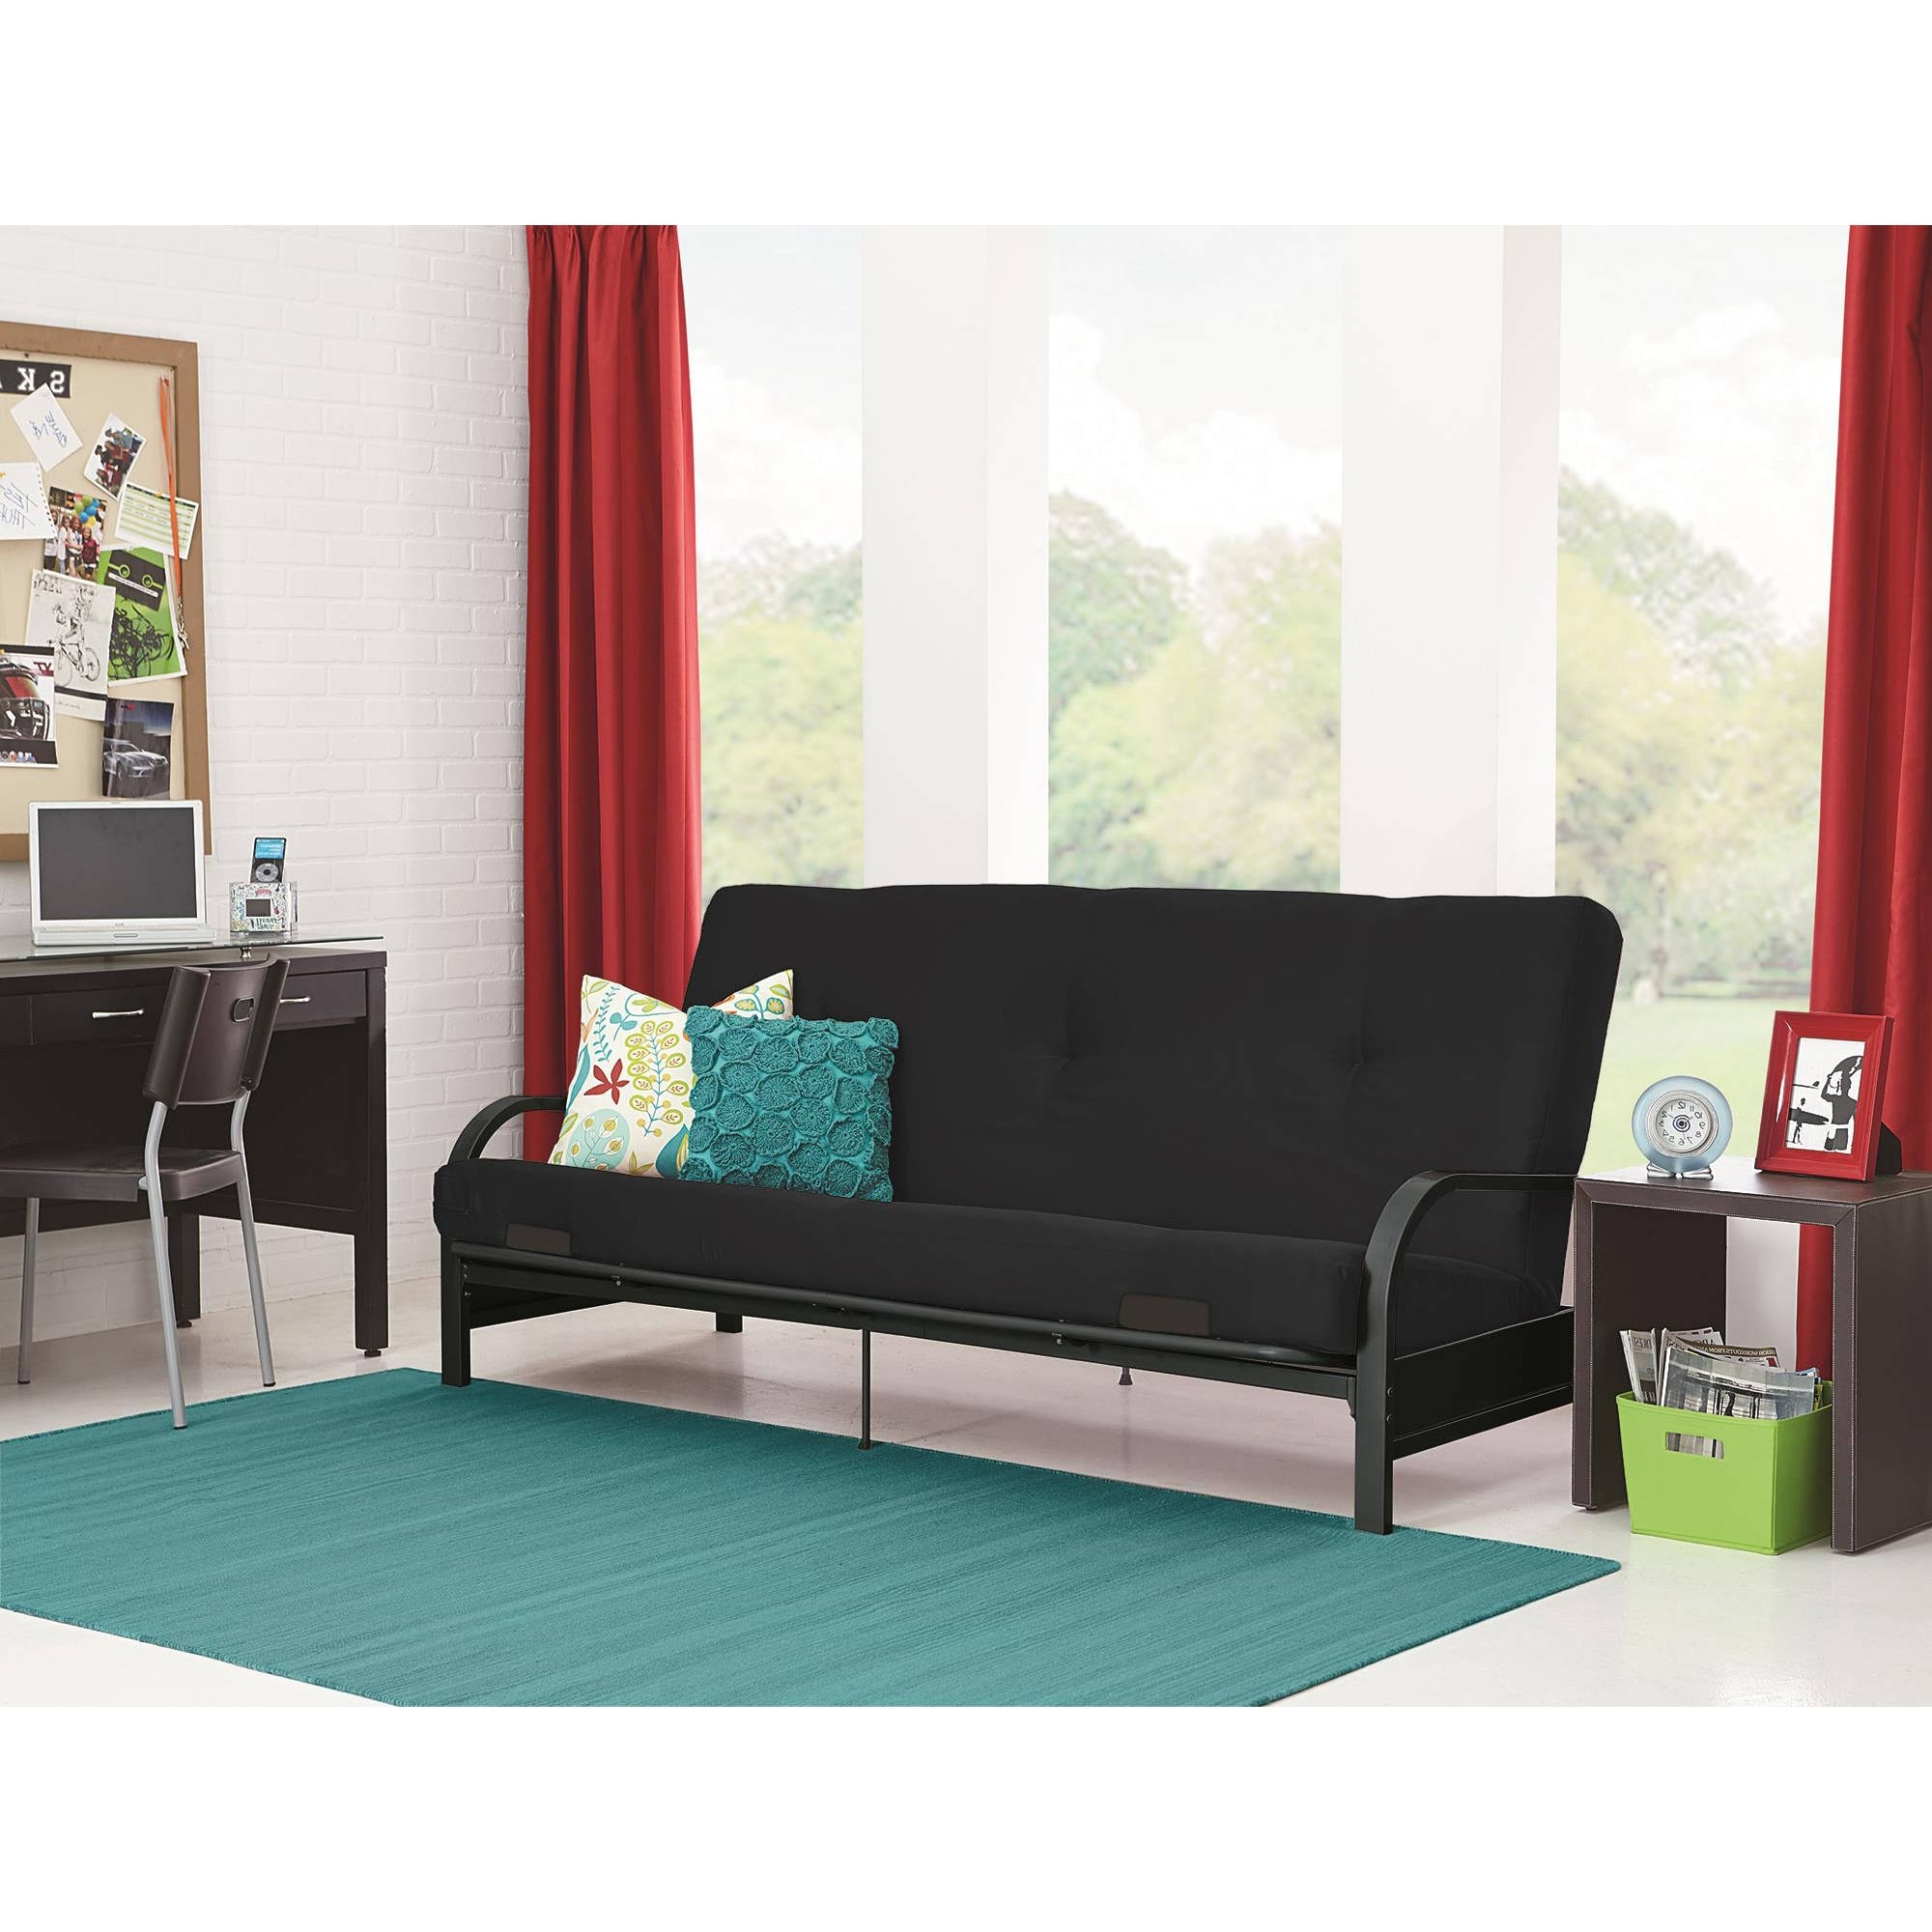 2018 Tallahassee Sectional Sofas In Futons – Walmart (View 1 of 15)